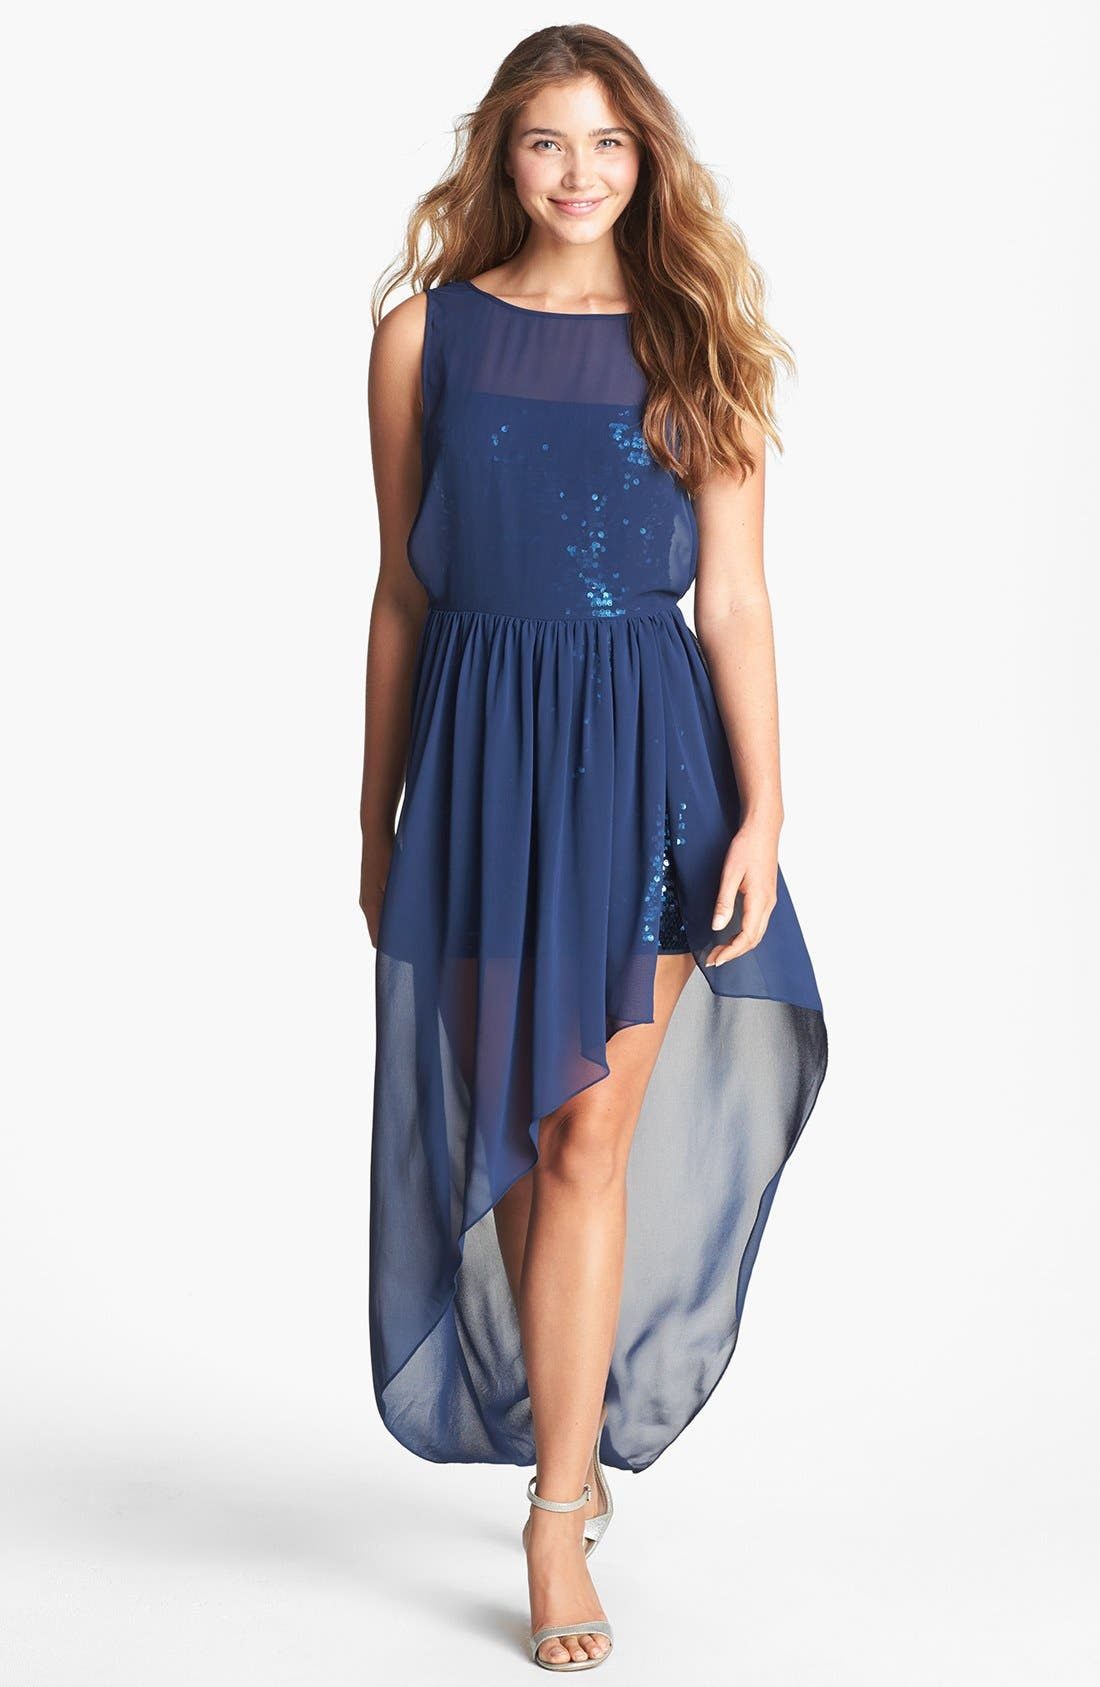 Main Image - BCBGMAXAZRIA Sequin & Sheer Chiffon High/Low Dress